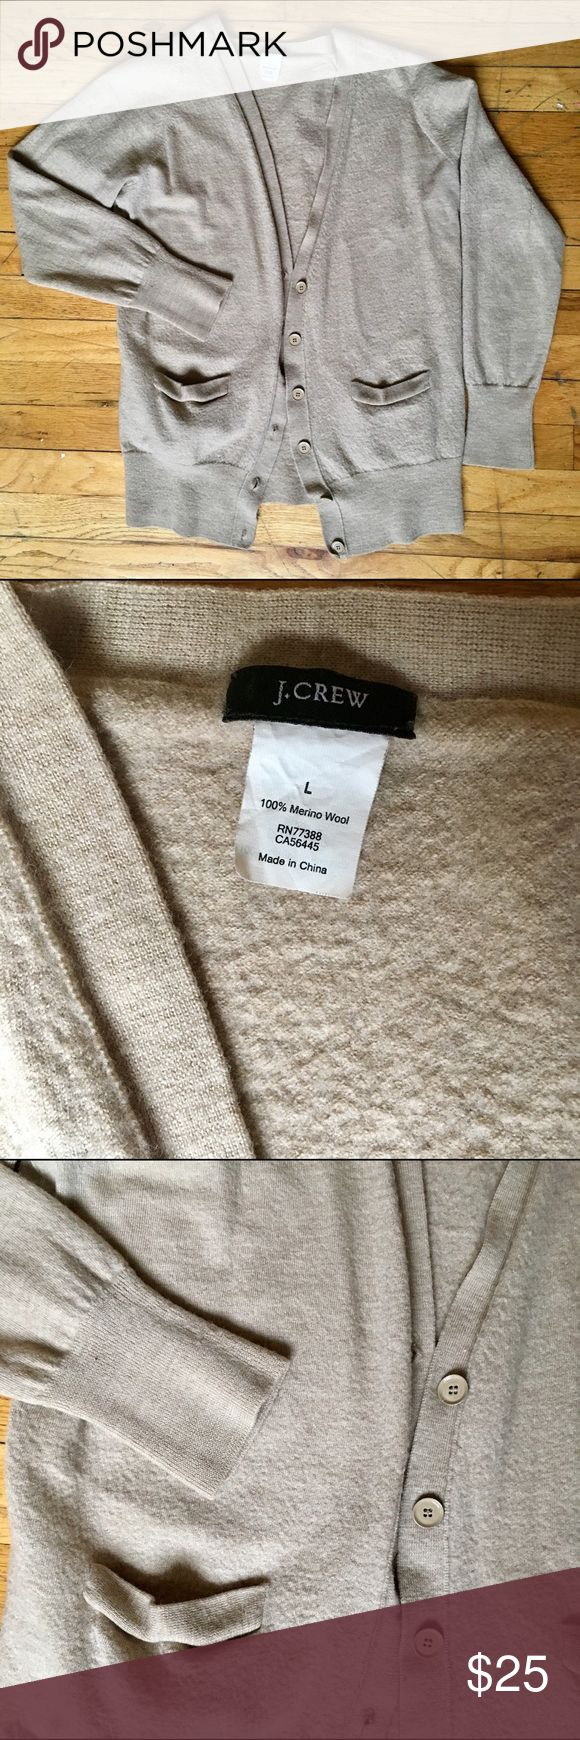 J.Crew Beige Cardigan 100% Merino Wool A beautiful addition to your wardrobe. Like New Condition - except for small snag on back of left arm (as pictured) hardly noticeable. J. Crew Sweaters Cardigans